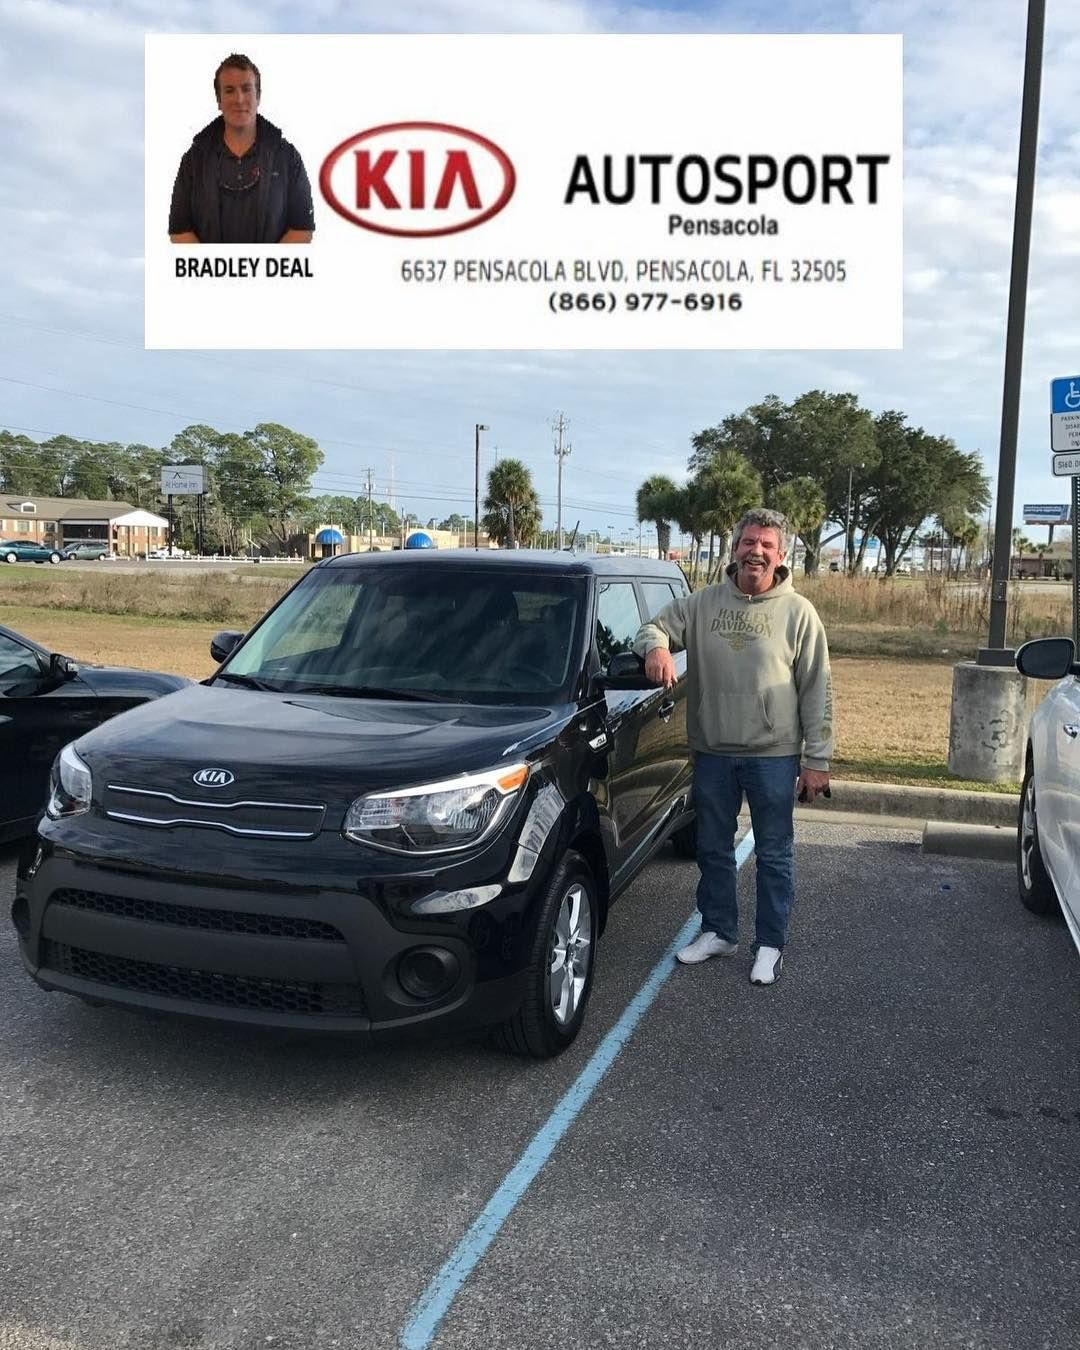 Bradley Deal And KIA AutoSport Of Pensacola Would Like To Thank Mr. Craig  Moyer For